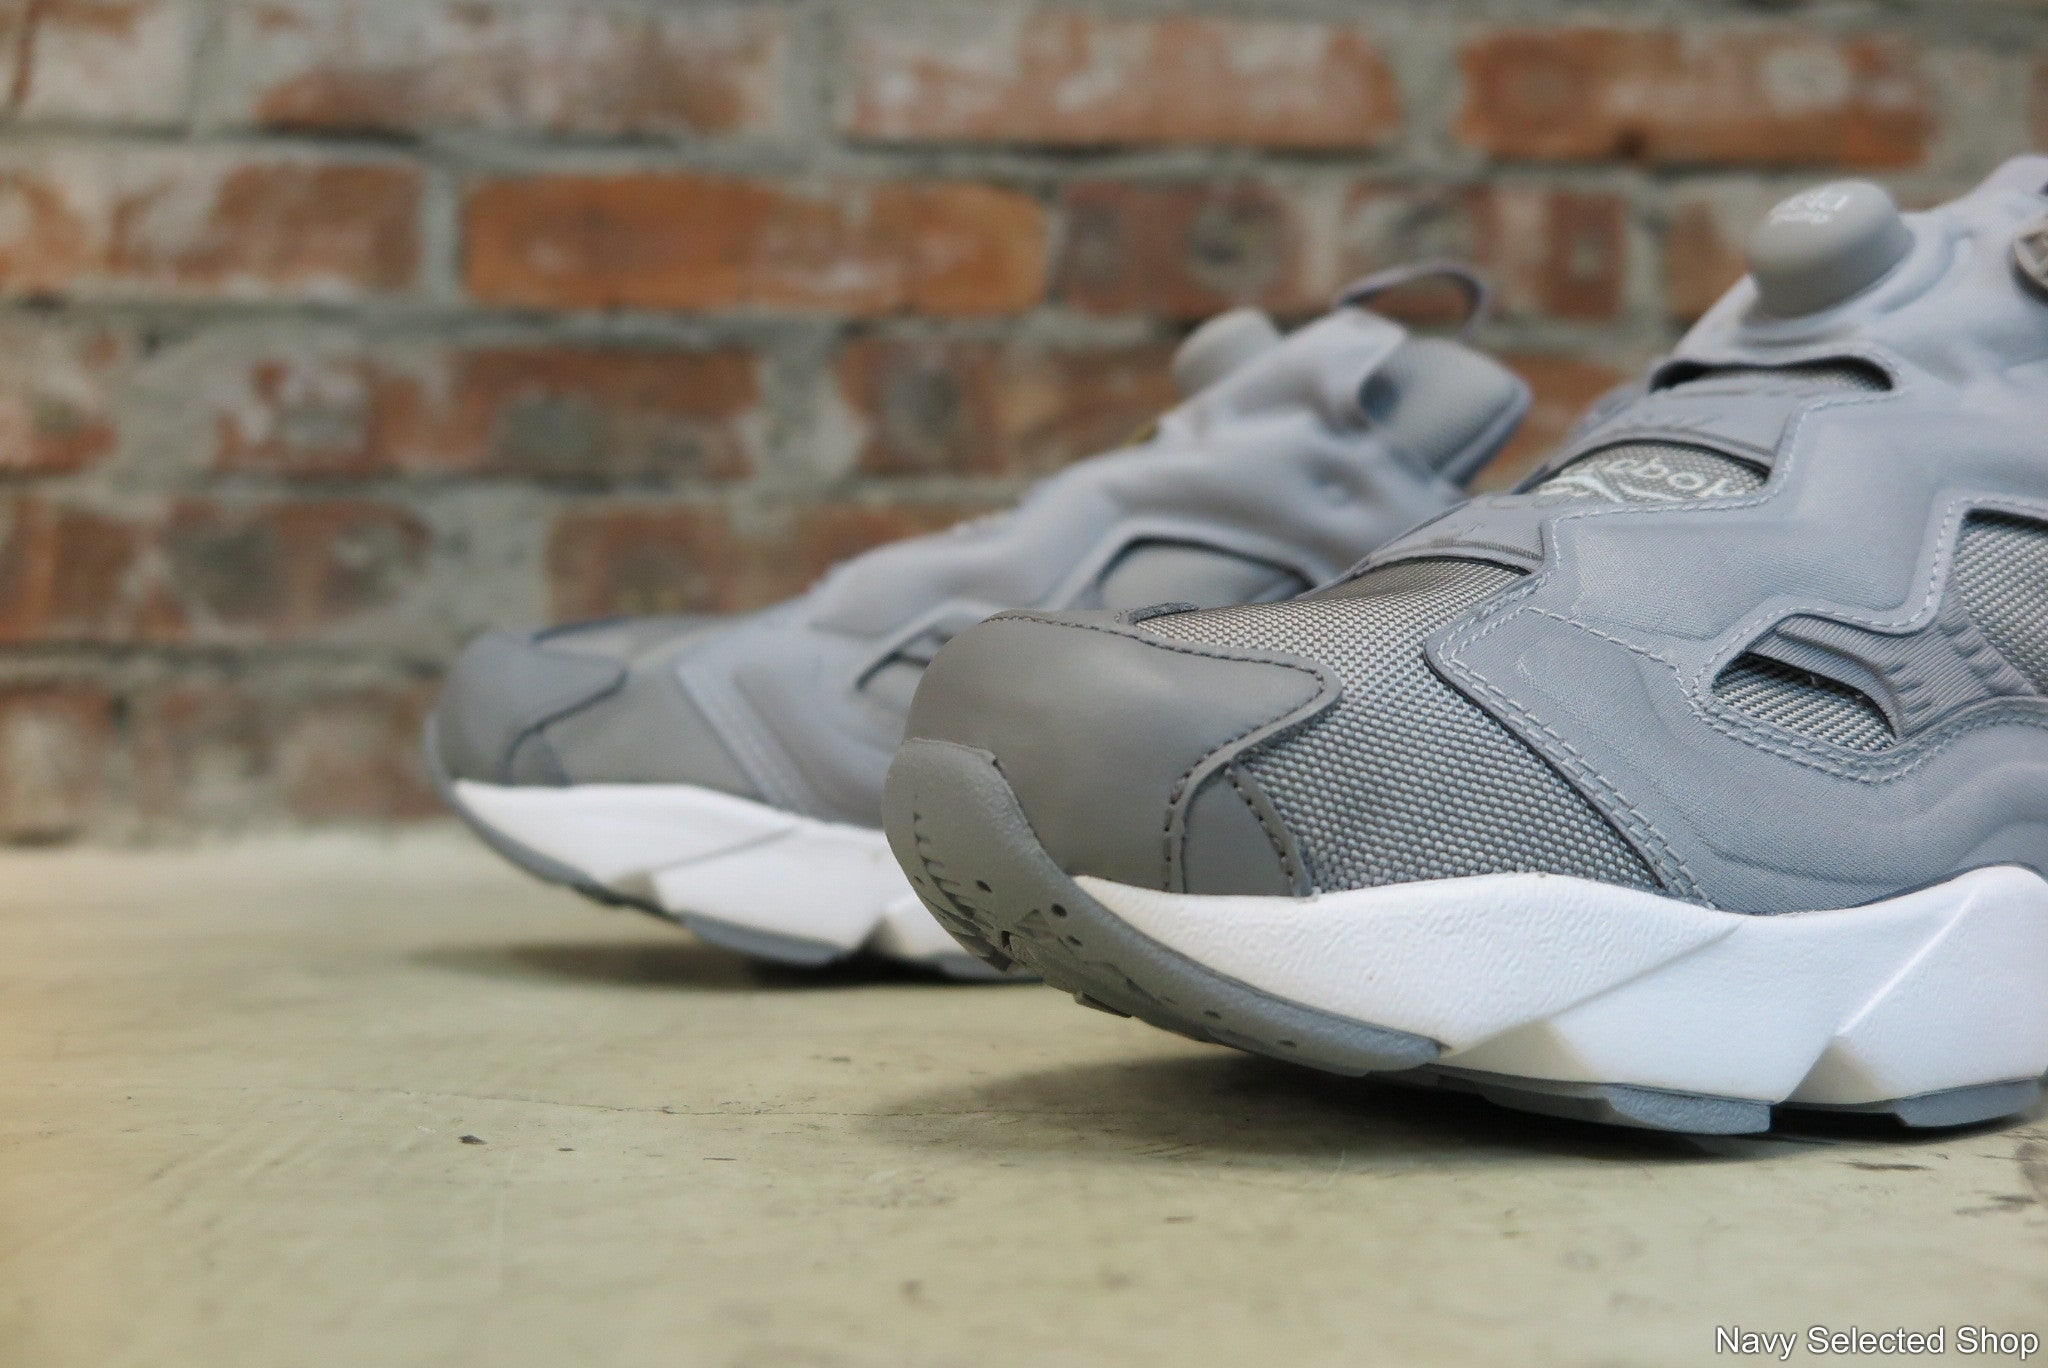 Reebok Instapump Fury OG - Flat Grey #V65751-Sneakers-Navy Selected Shop